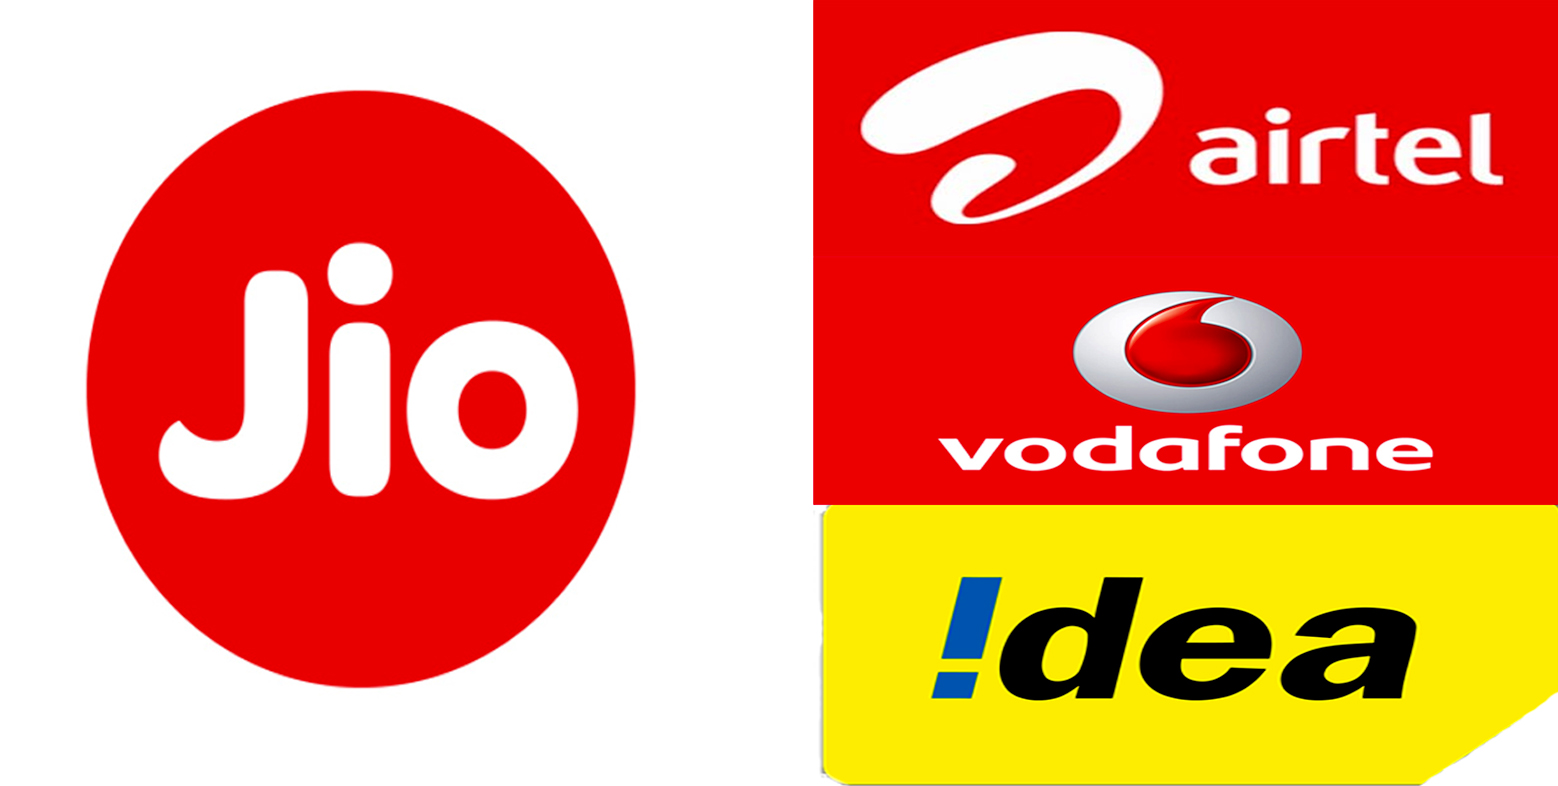 Unlimited data offers: Airtel, Vodafone, and Idea enter a face-off for best plans Unlimited data offers: Airtel, Vodafone and Idea enter a face-off for best plans